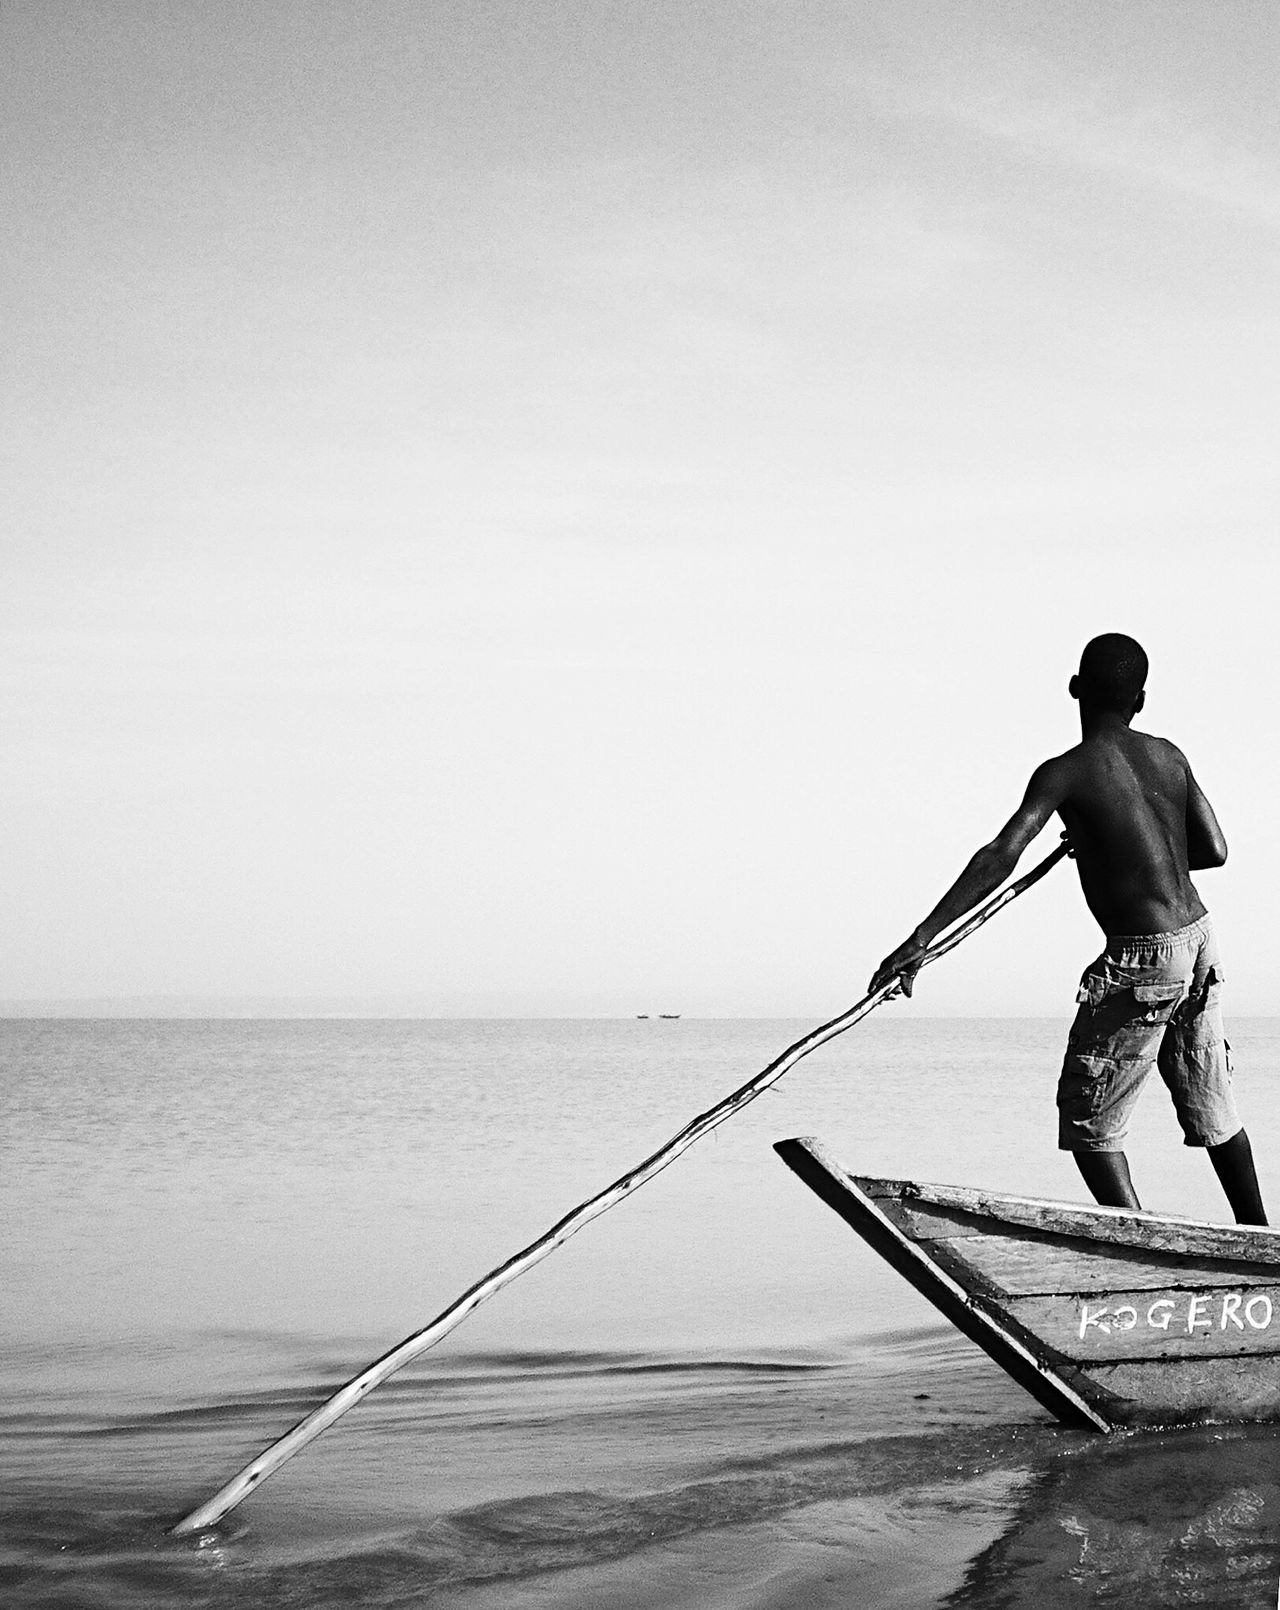 Real People Sea One Person Water Nautical Vessel Men Nature Full Length Day Fisherman Outdoors Occupation Clear Sky Sky Horizon Over Water Beauty In Nature Working Blackandwhite Kenya